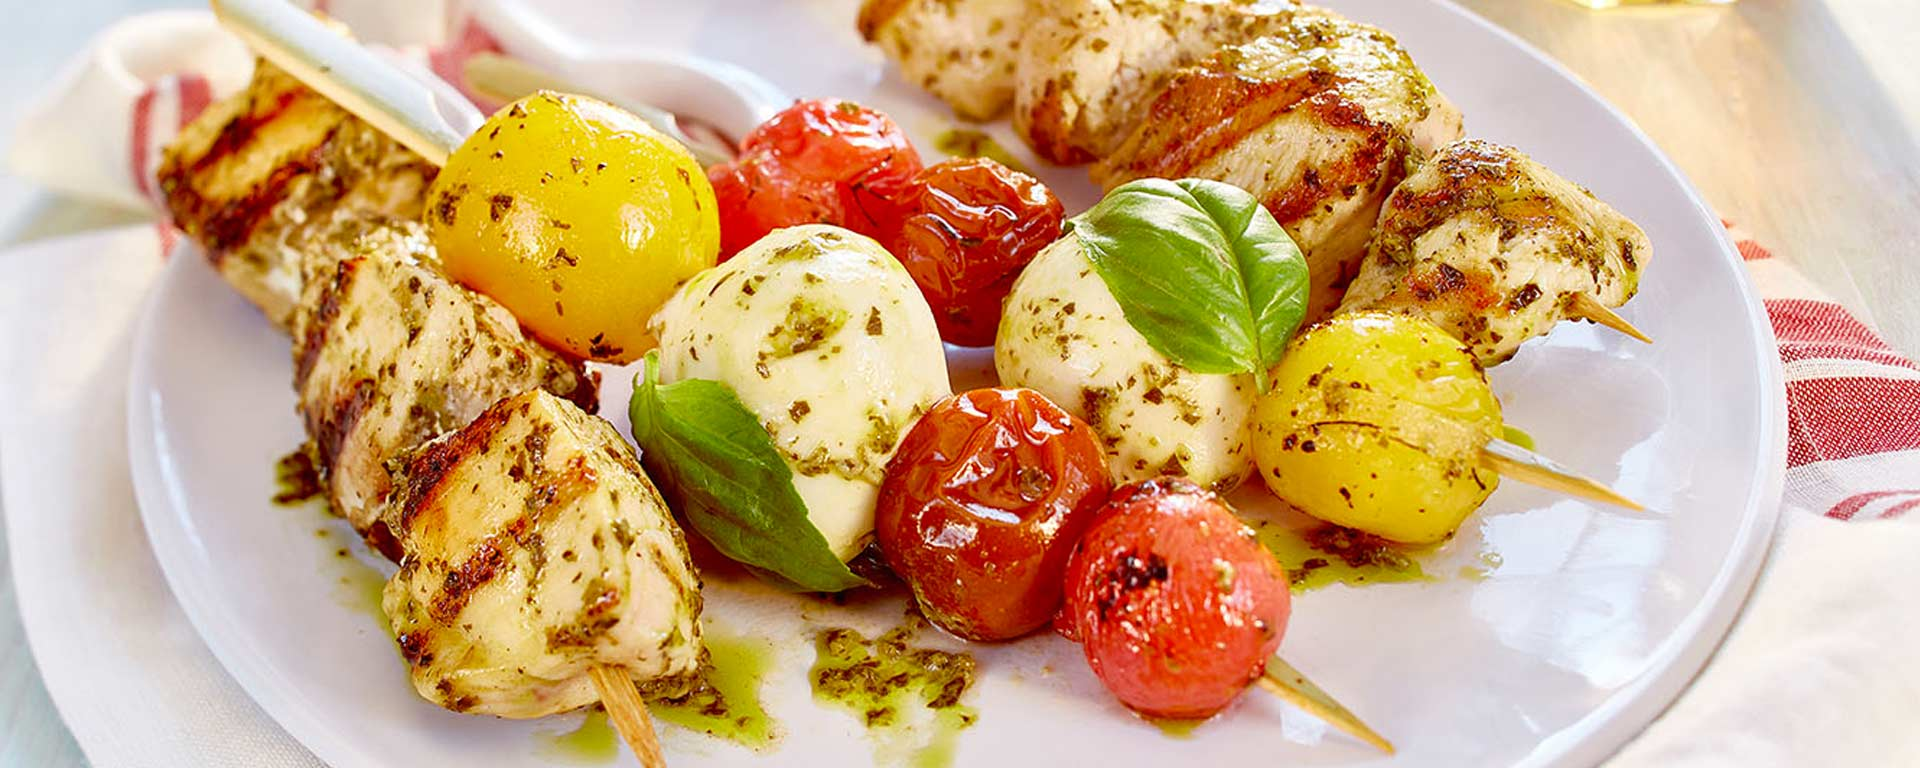 Photo for - Brochettes grillées caprese au poulet